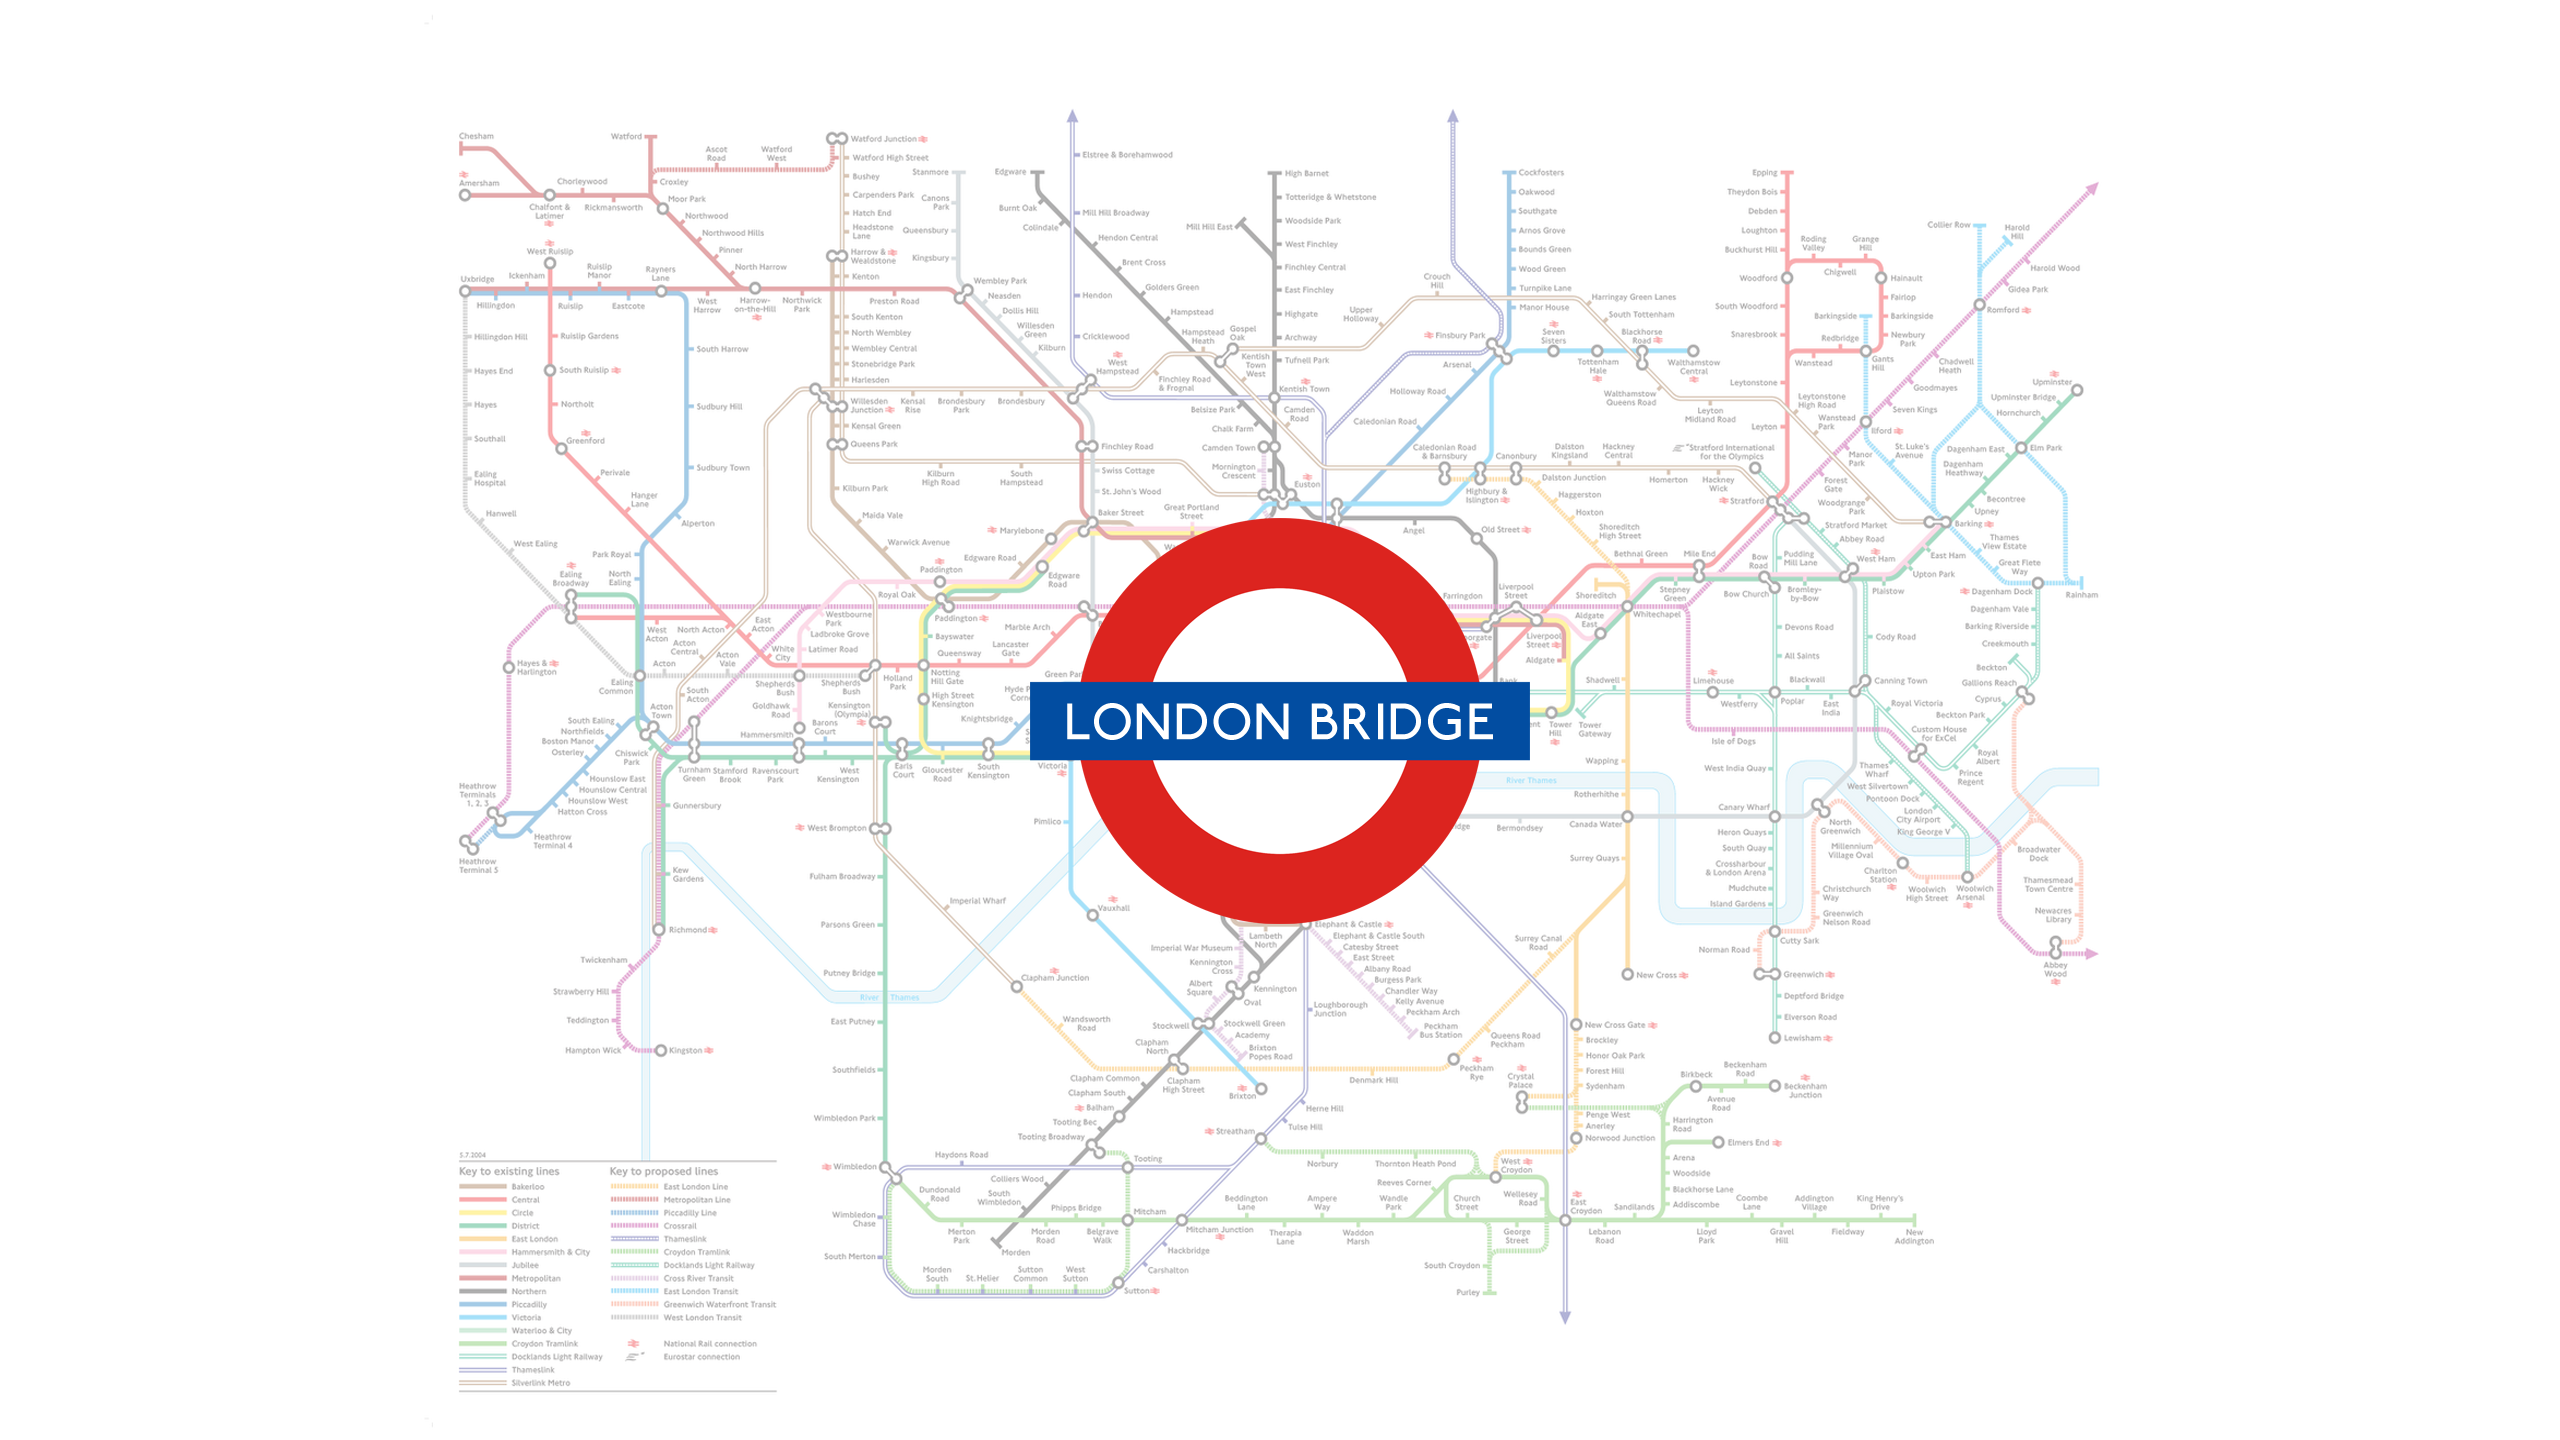 London Bridge (Map)